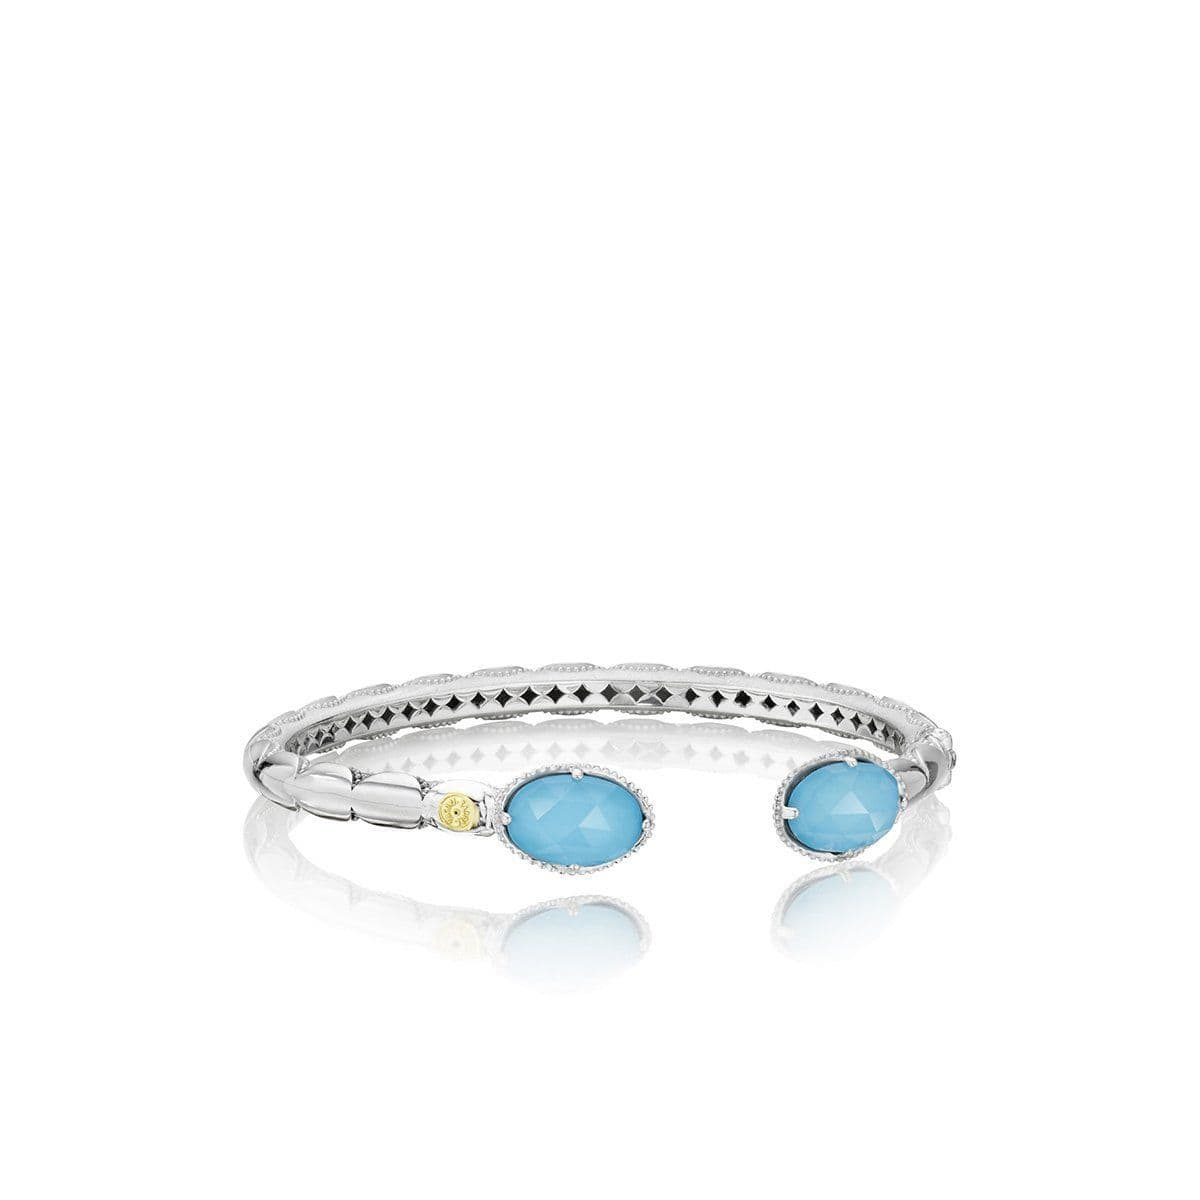 Silver 12x8 Oval Turquoise Bangle - SB13305-Tacori-Renee Taylor Gallery